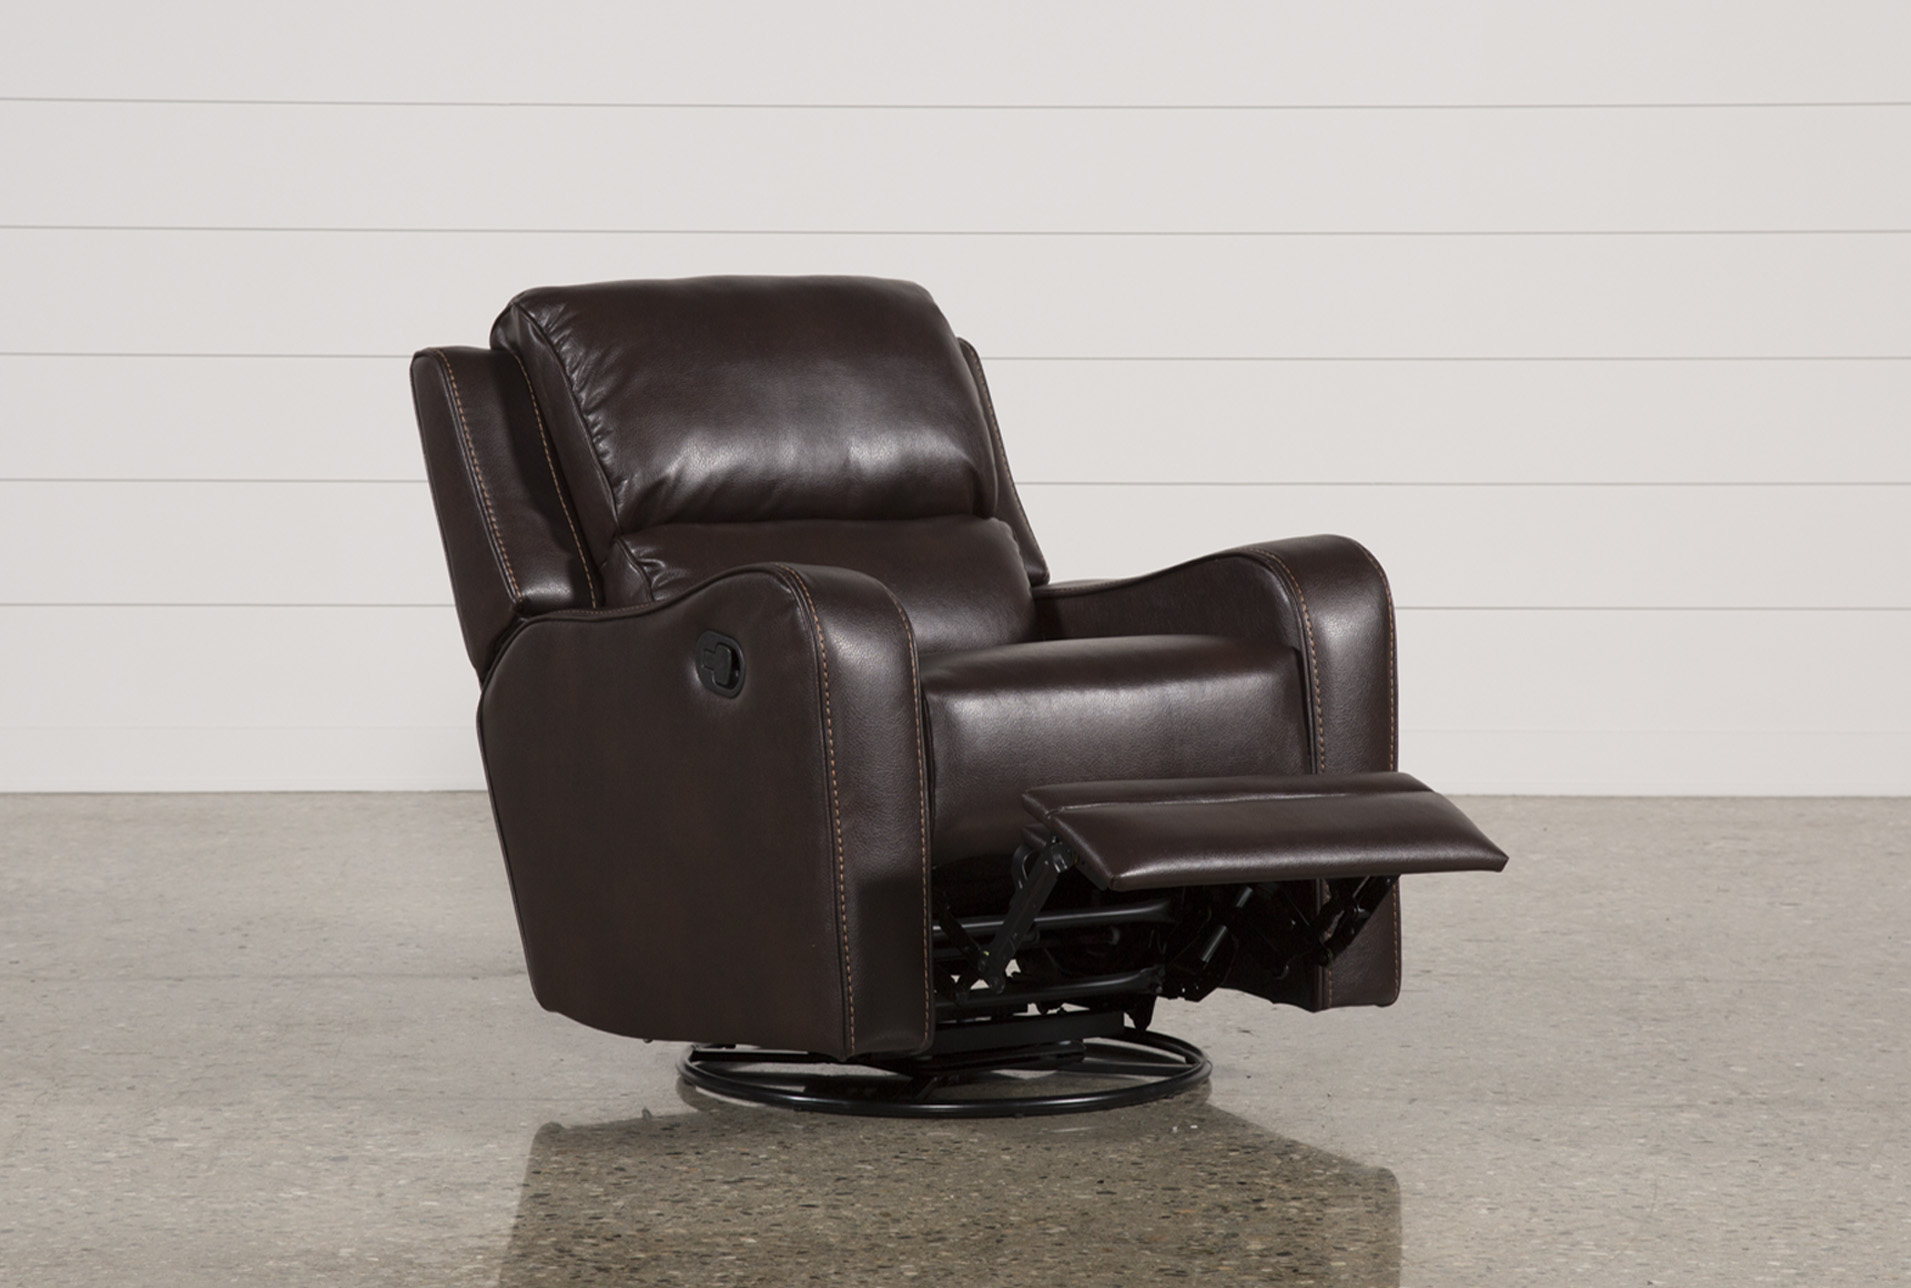 Scorpio Brown Swivel Glider Recliner In 2018 | Products | Pinterest With Regard To Kawai Leather Swivel Chairs (View 7 of 25)